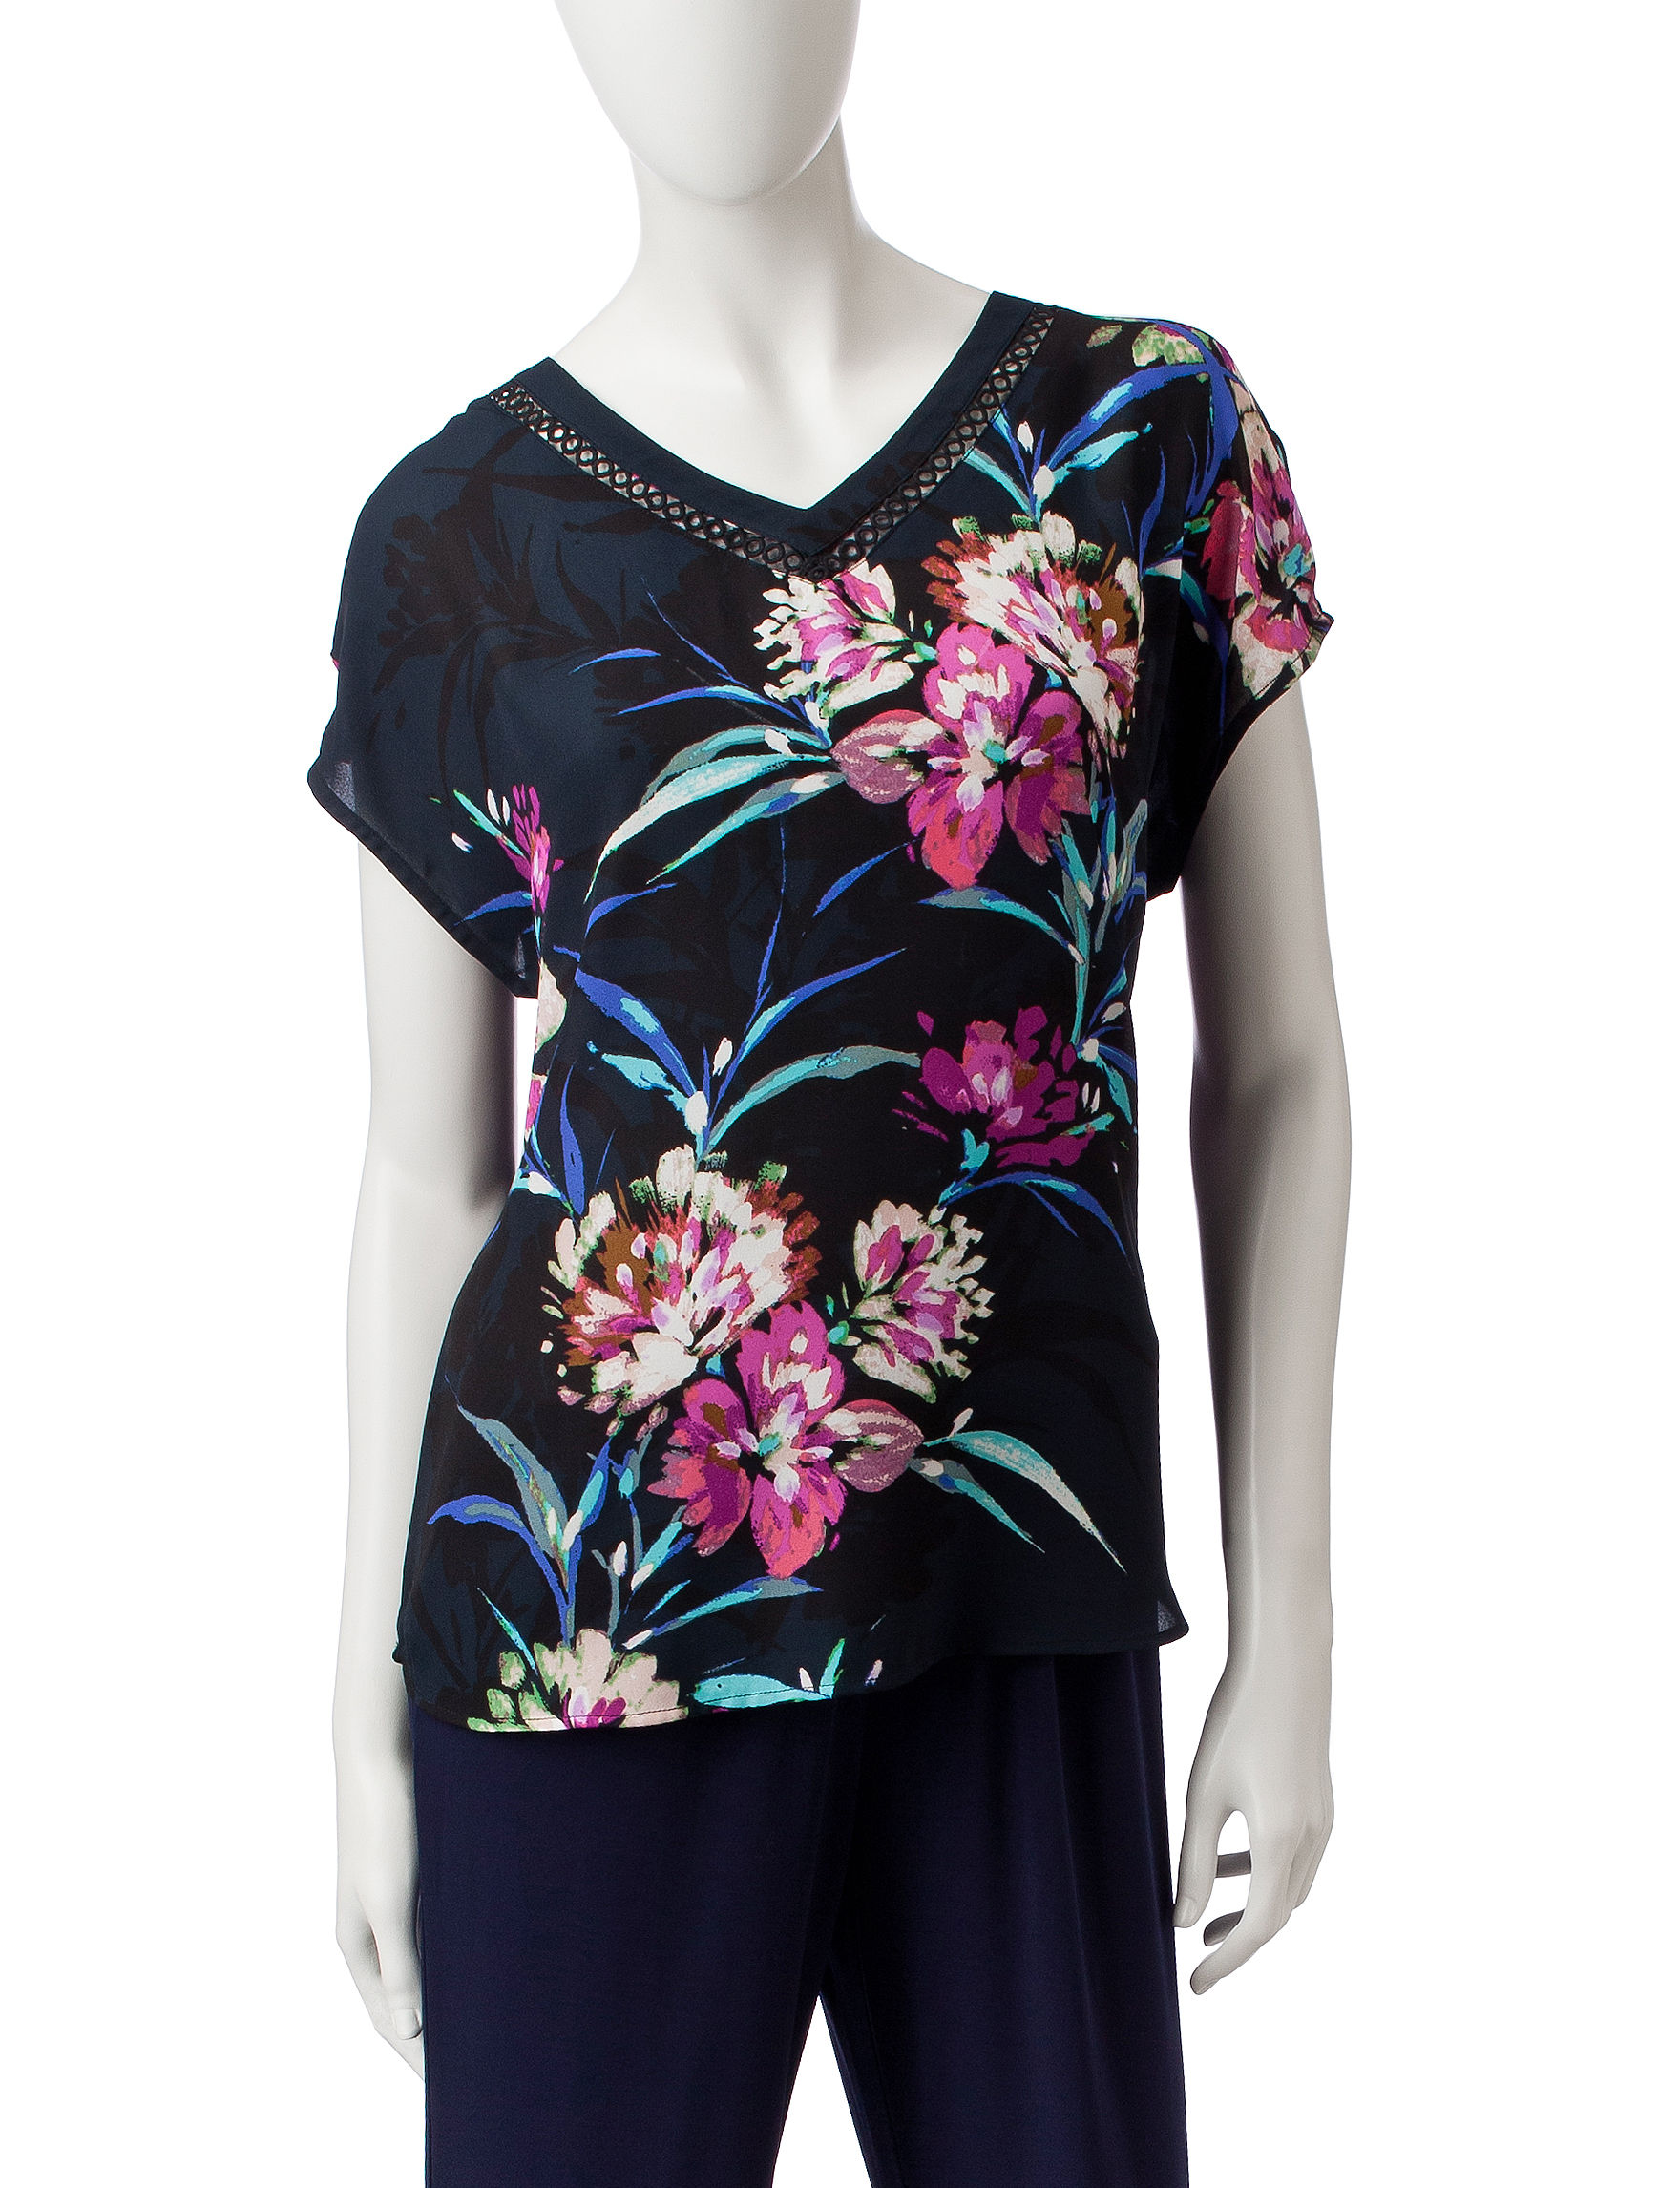 Valerie Stevens Blue Floral Everyday & Casual Shirts & Blouses